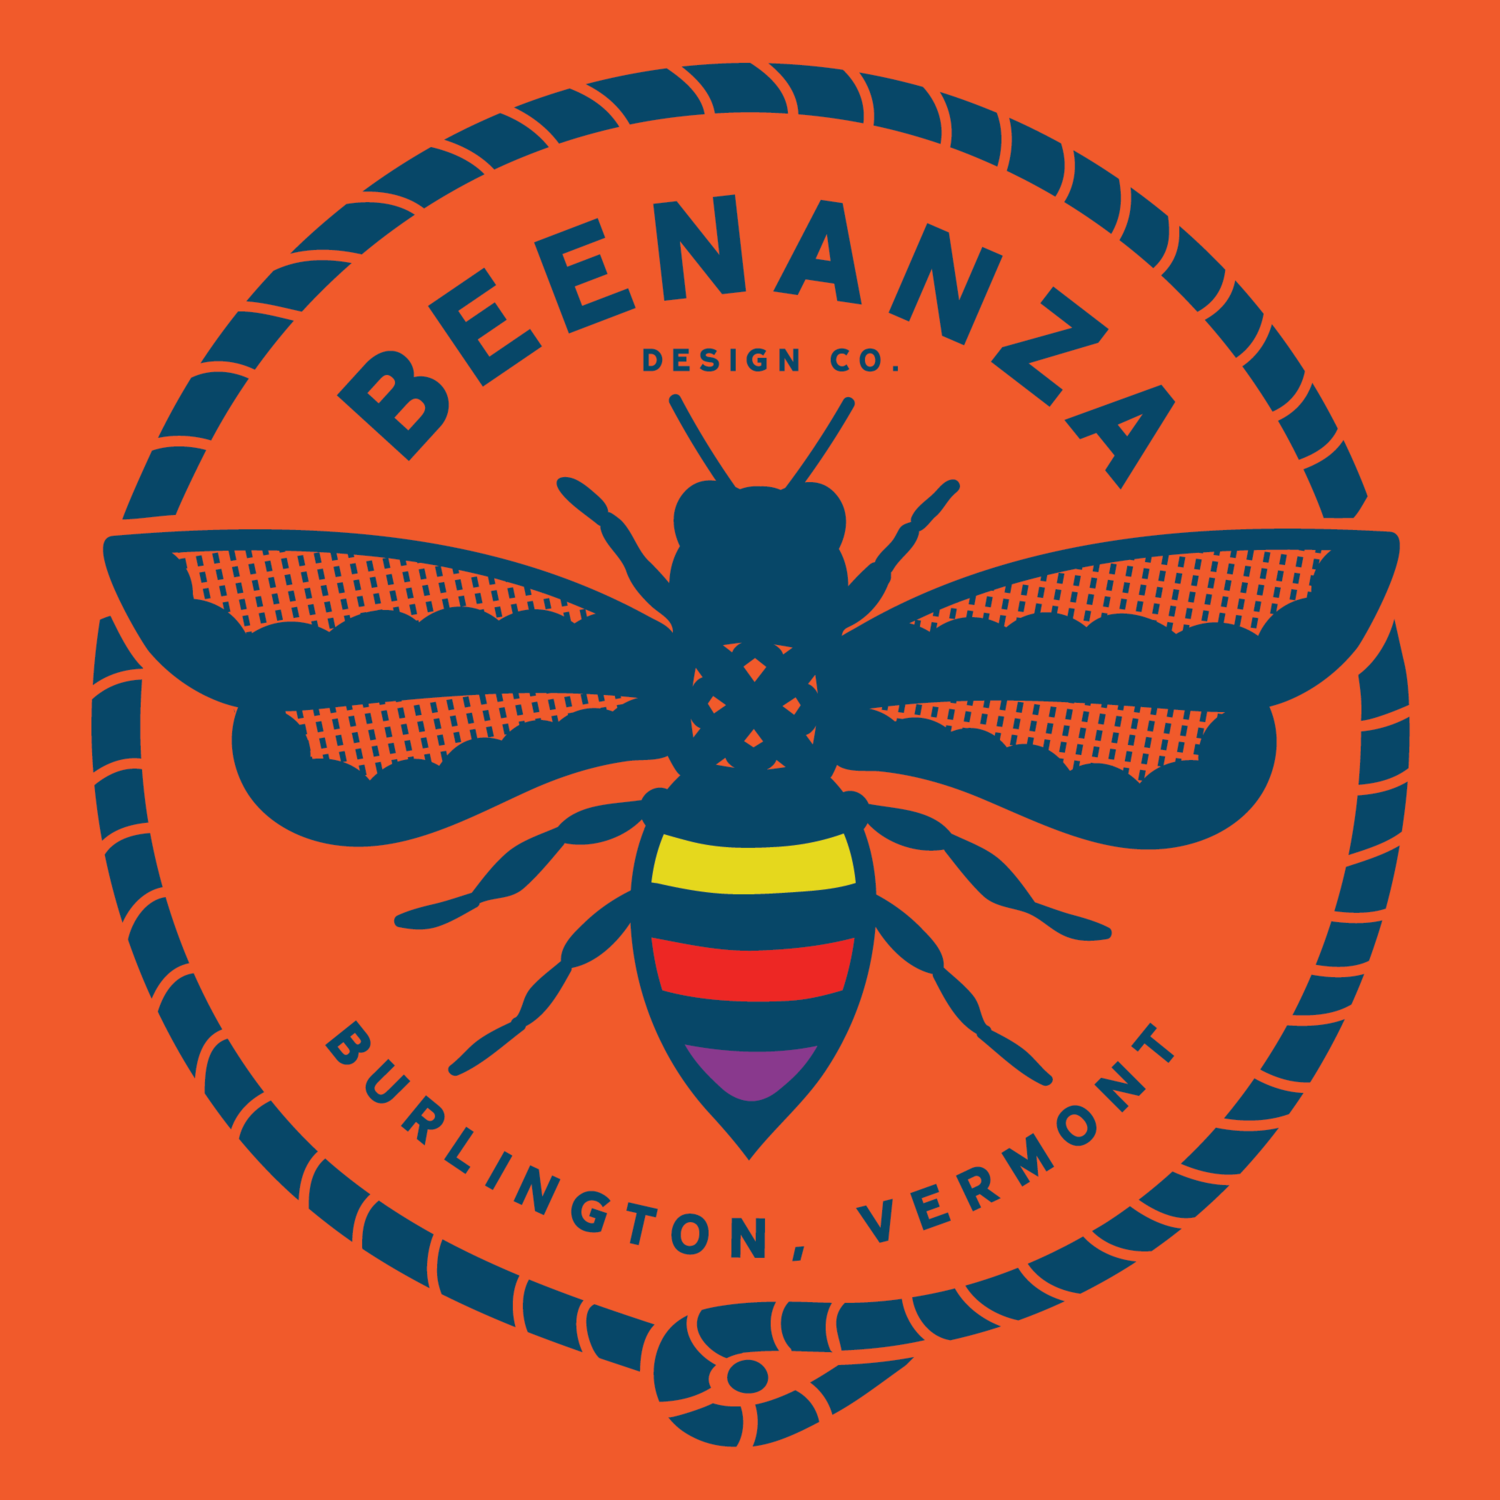 BeenanzaLogo7x7in-01.png